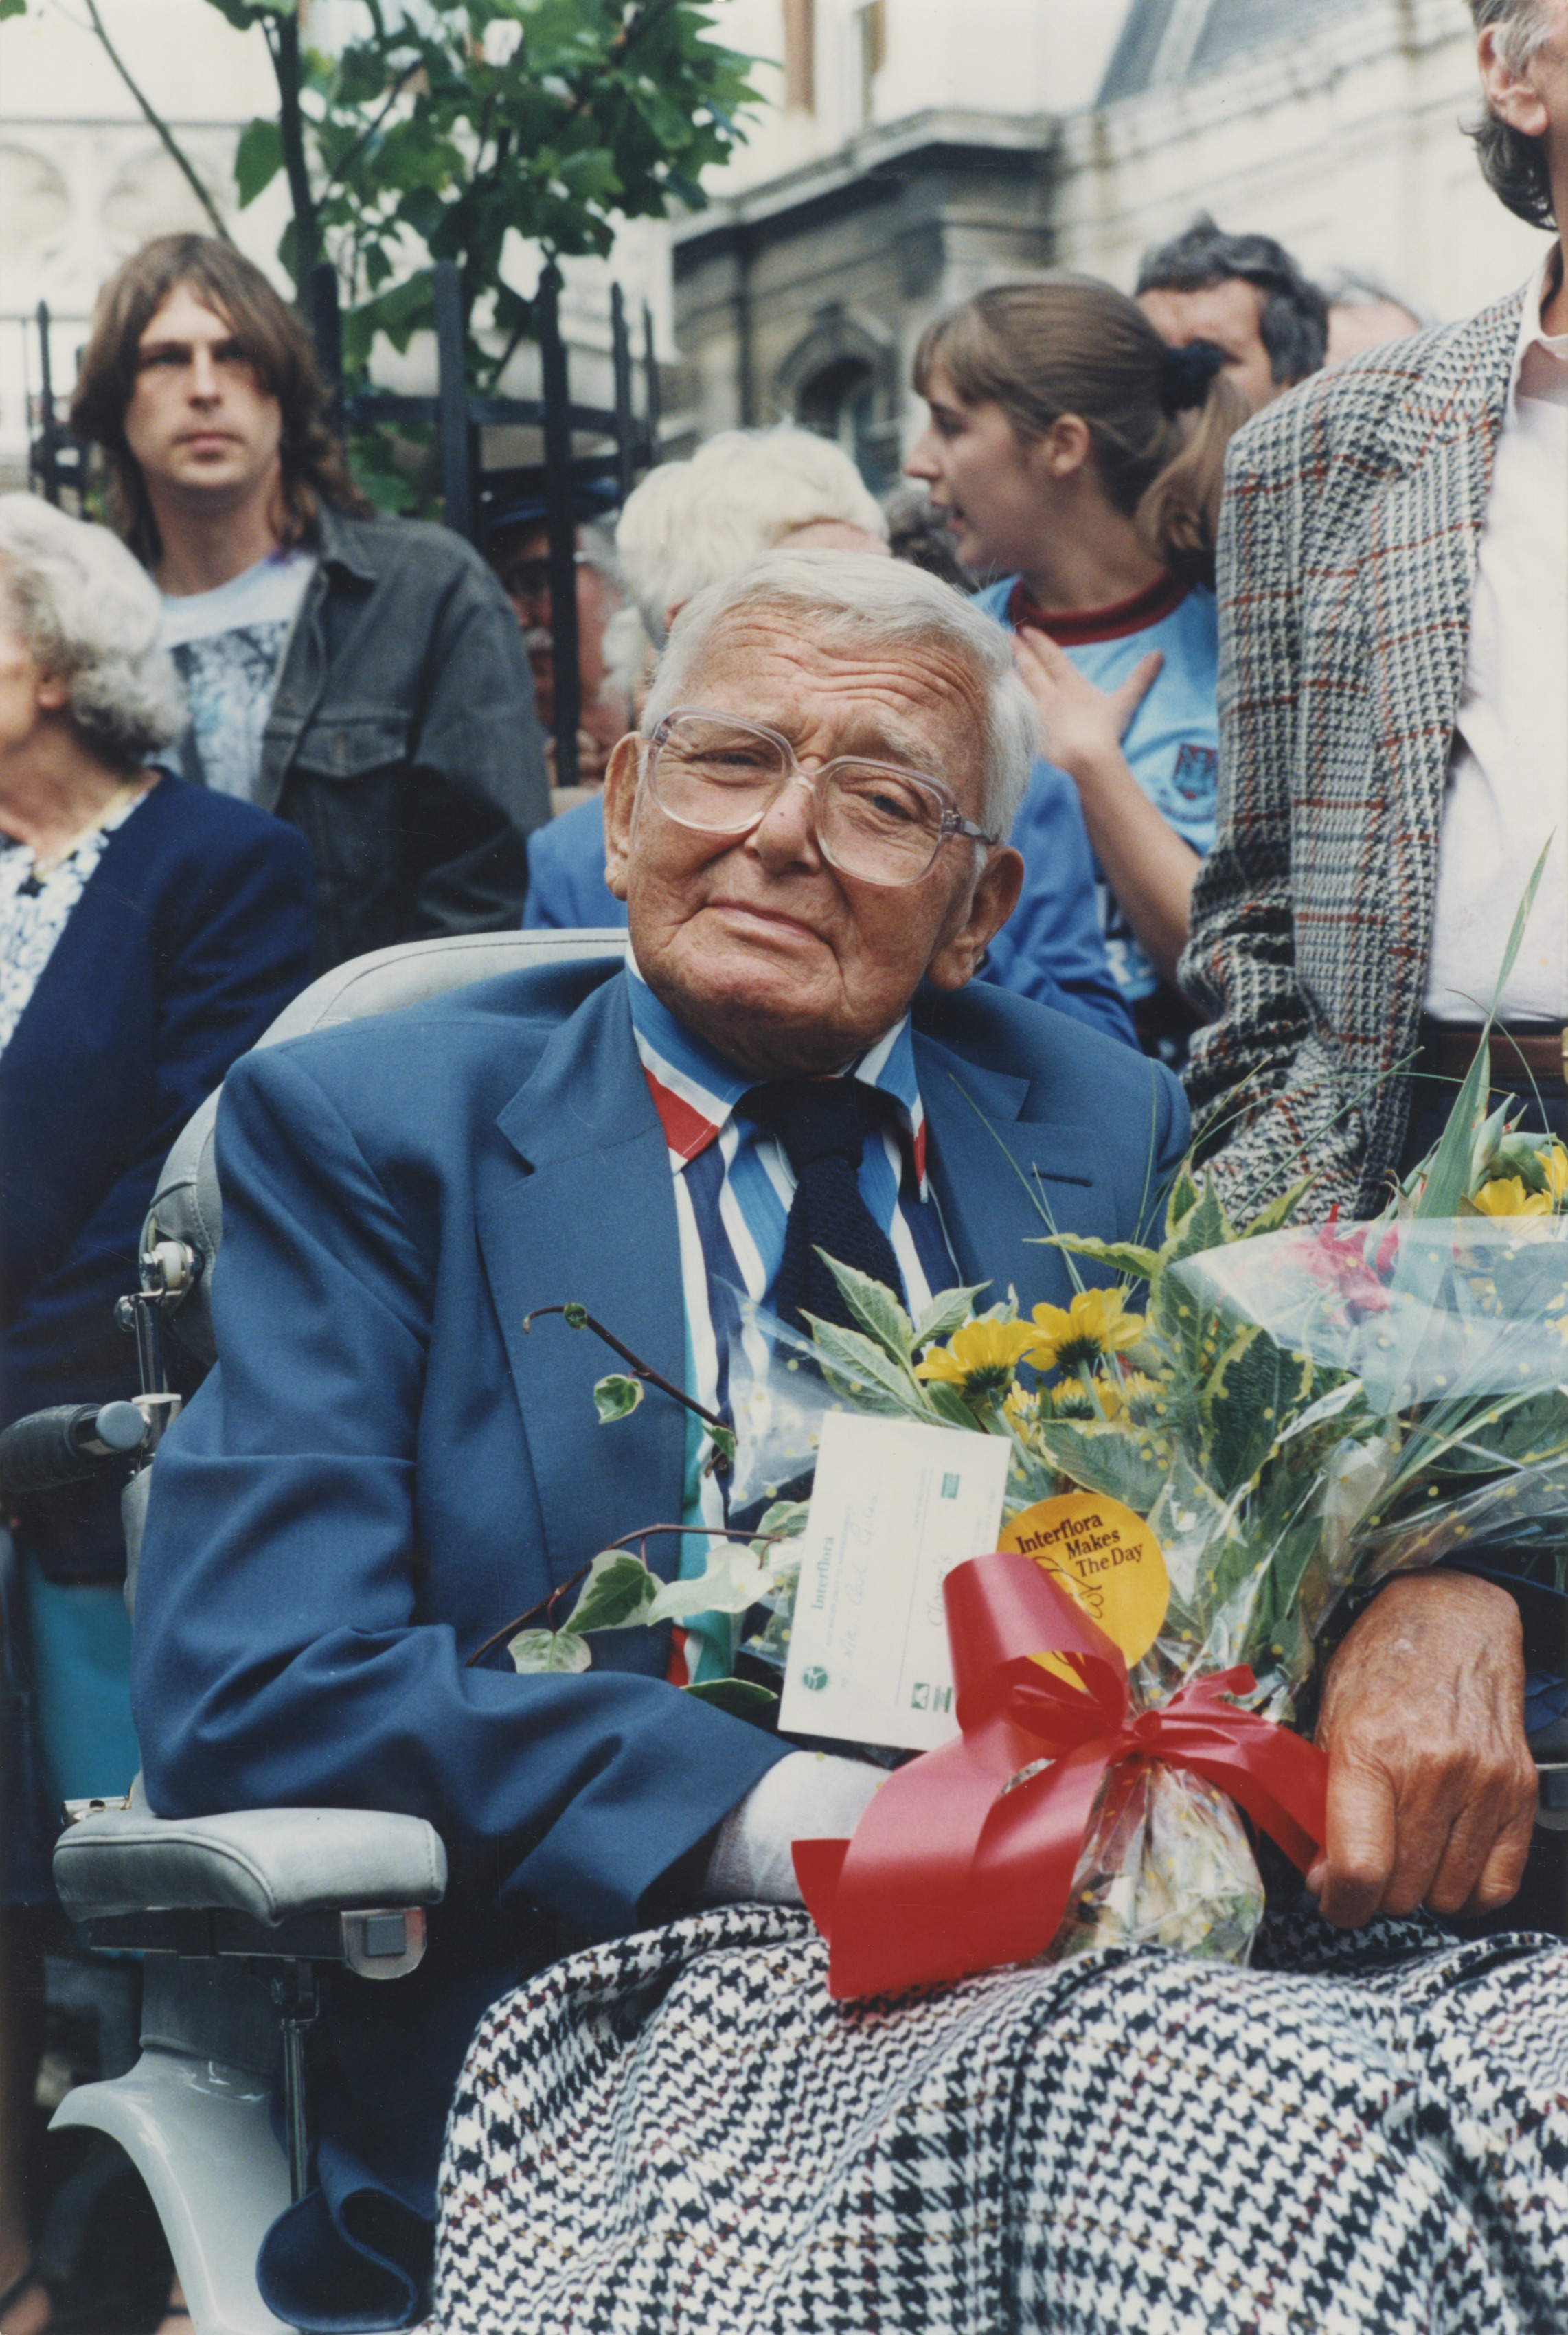 Colour photo of Giles at the unveiling of the Grandma statue in Ipswich - East Anglian Daily Times, September 1993 (Image ref: GAPH00429)